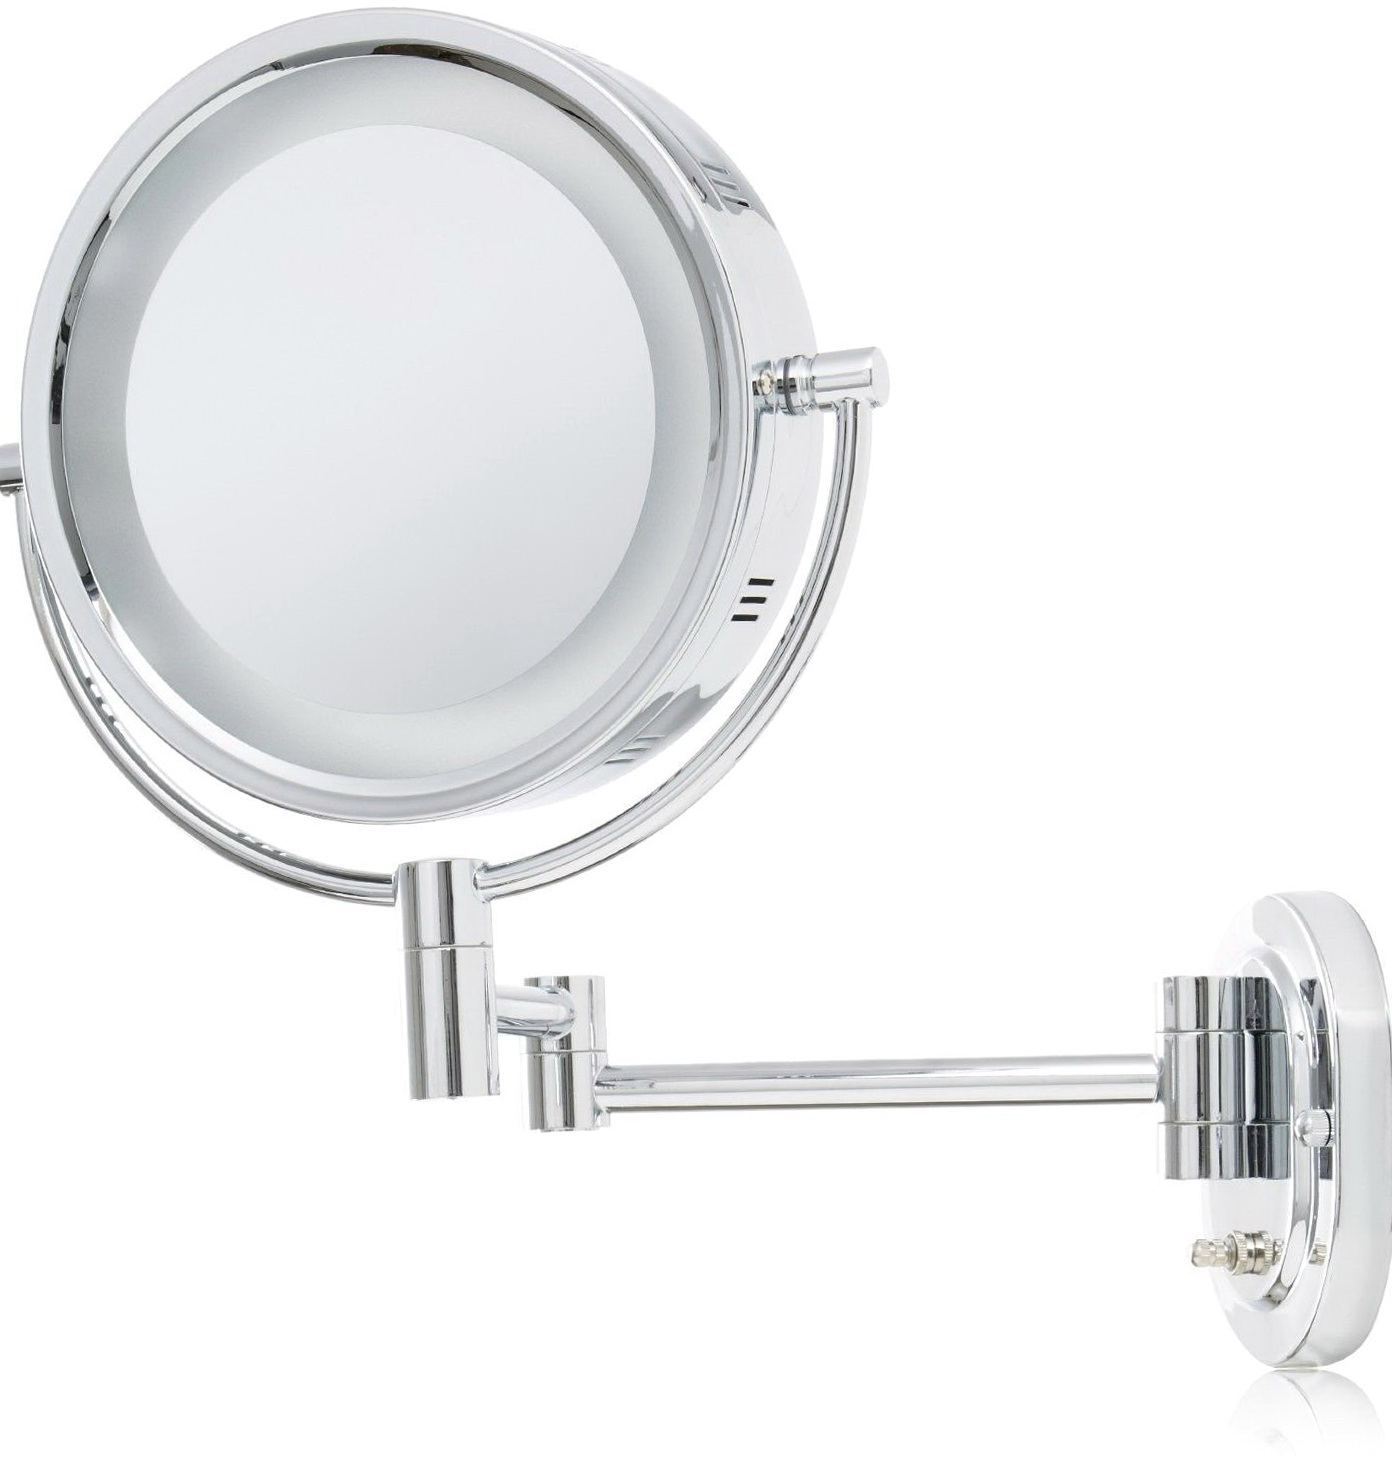 Wall Mount Makeup Mirror 10x Home Design Ideas